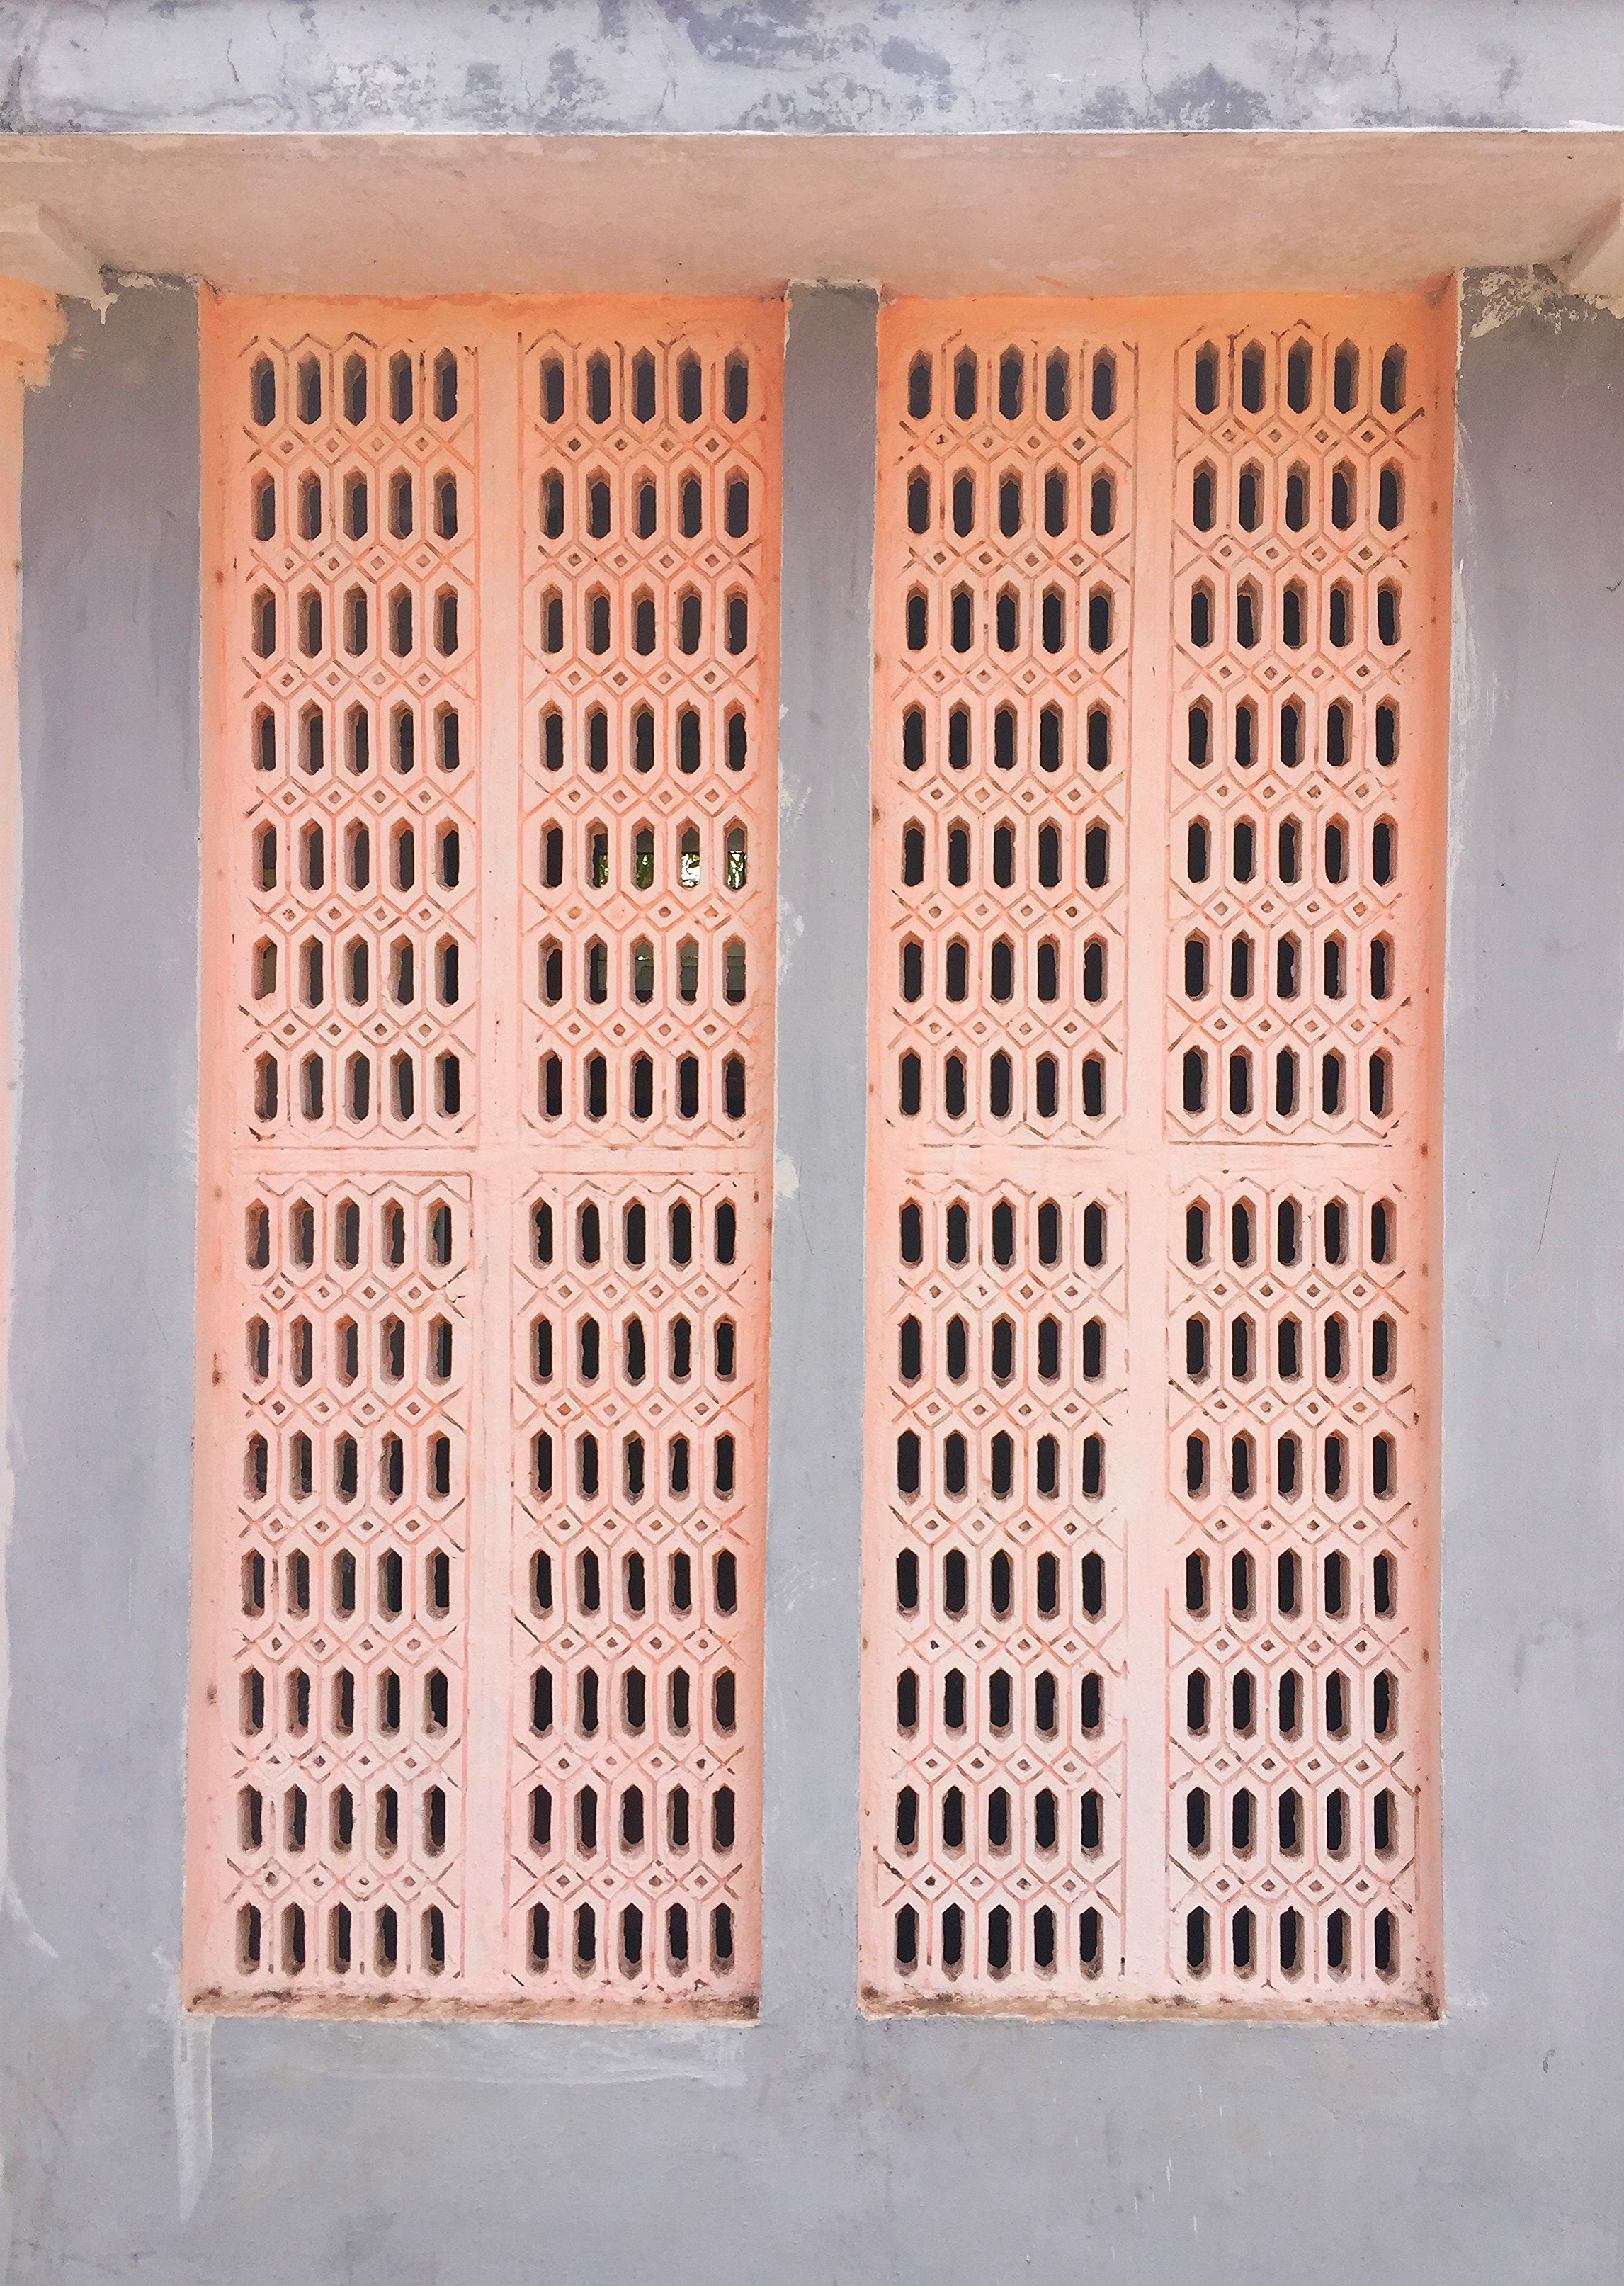 Lattice concrete window at a public bathroom